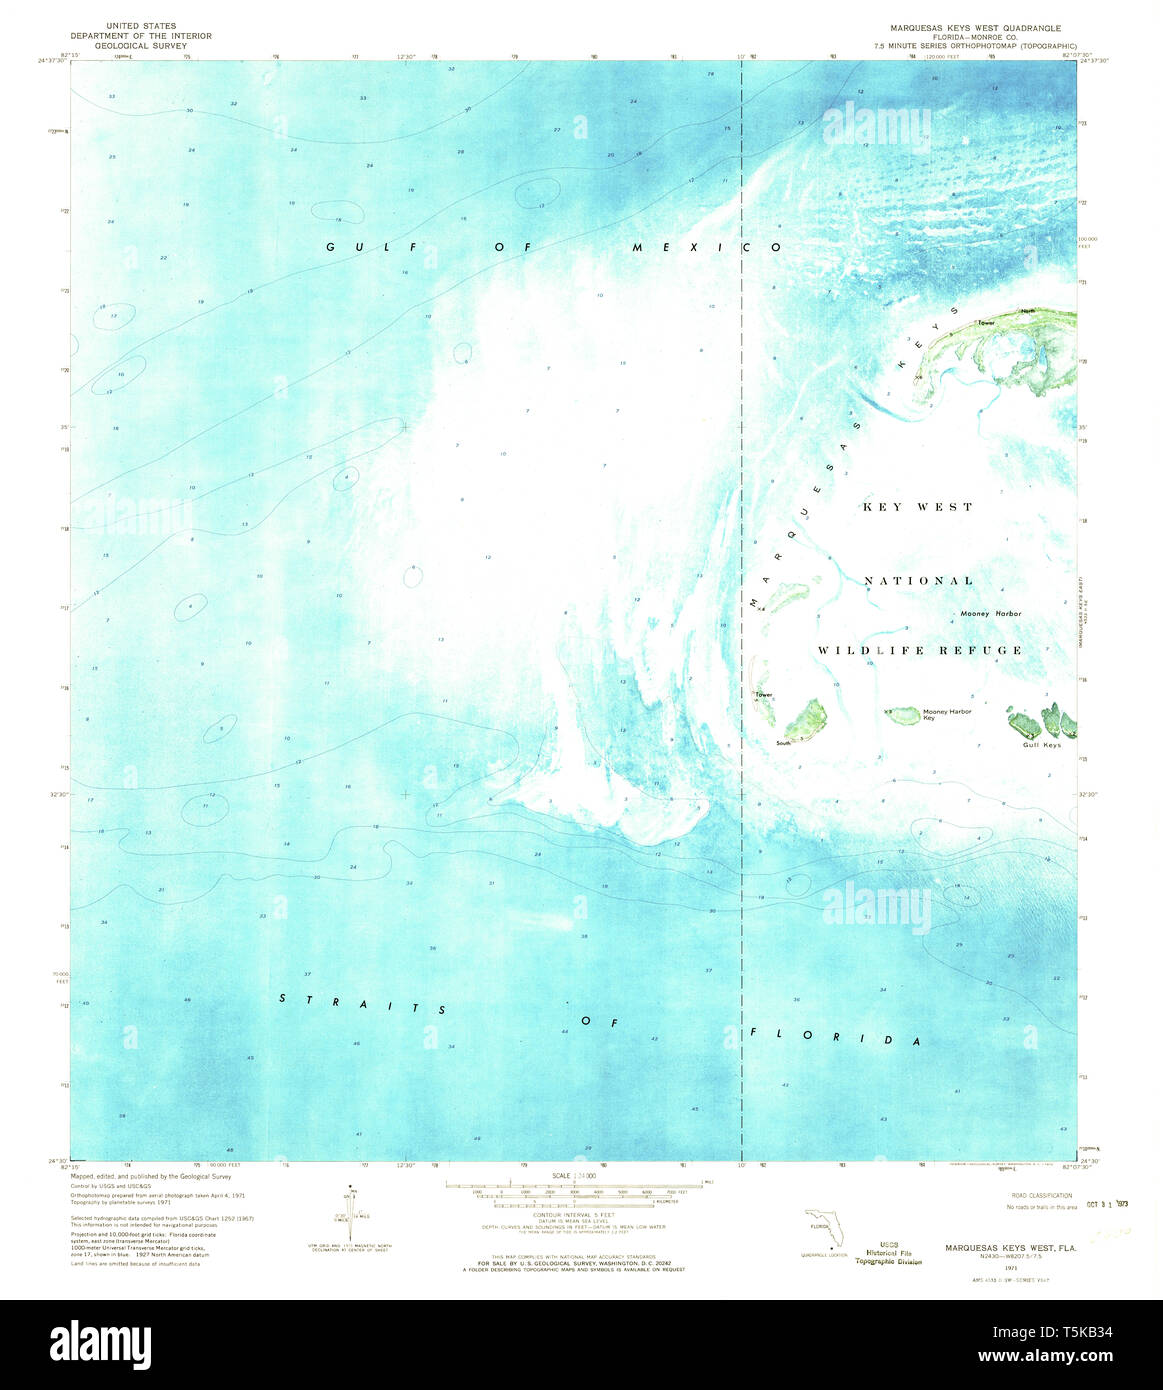 Map Of Florida Key West.Usgs Topo Map Florida Fl Marquesas Keys West 347360 1971 24000